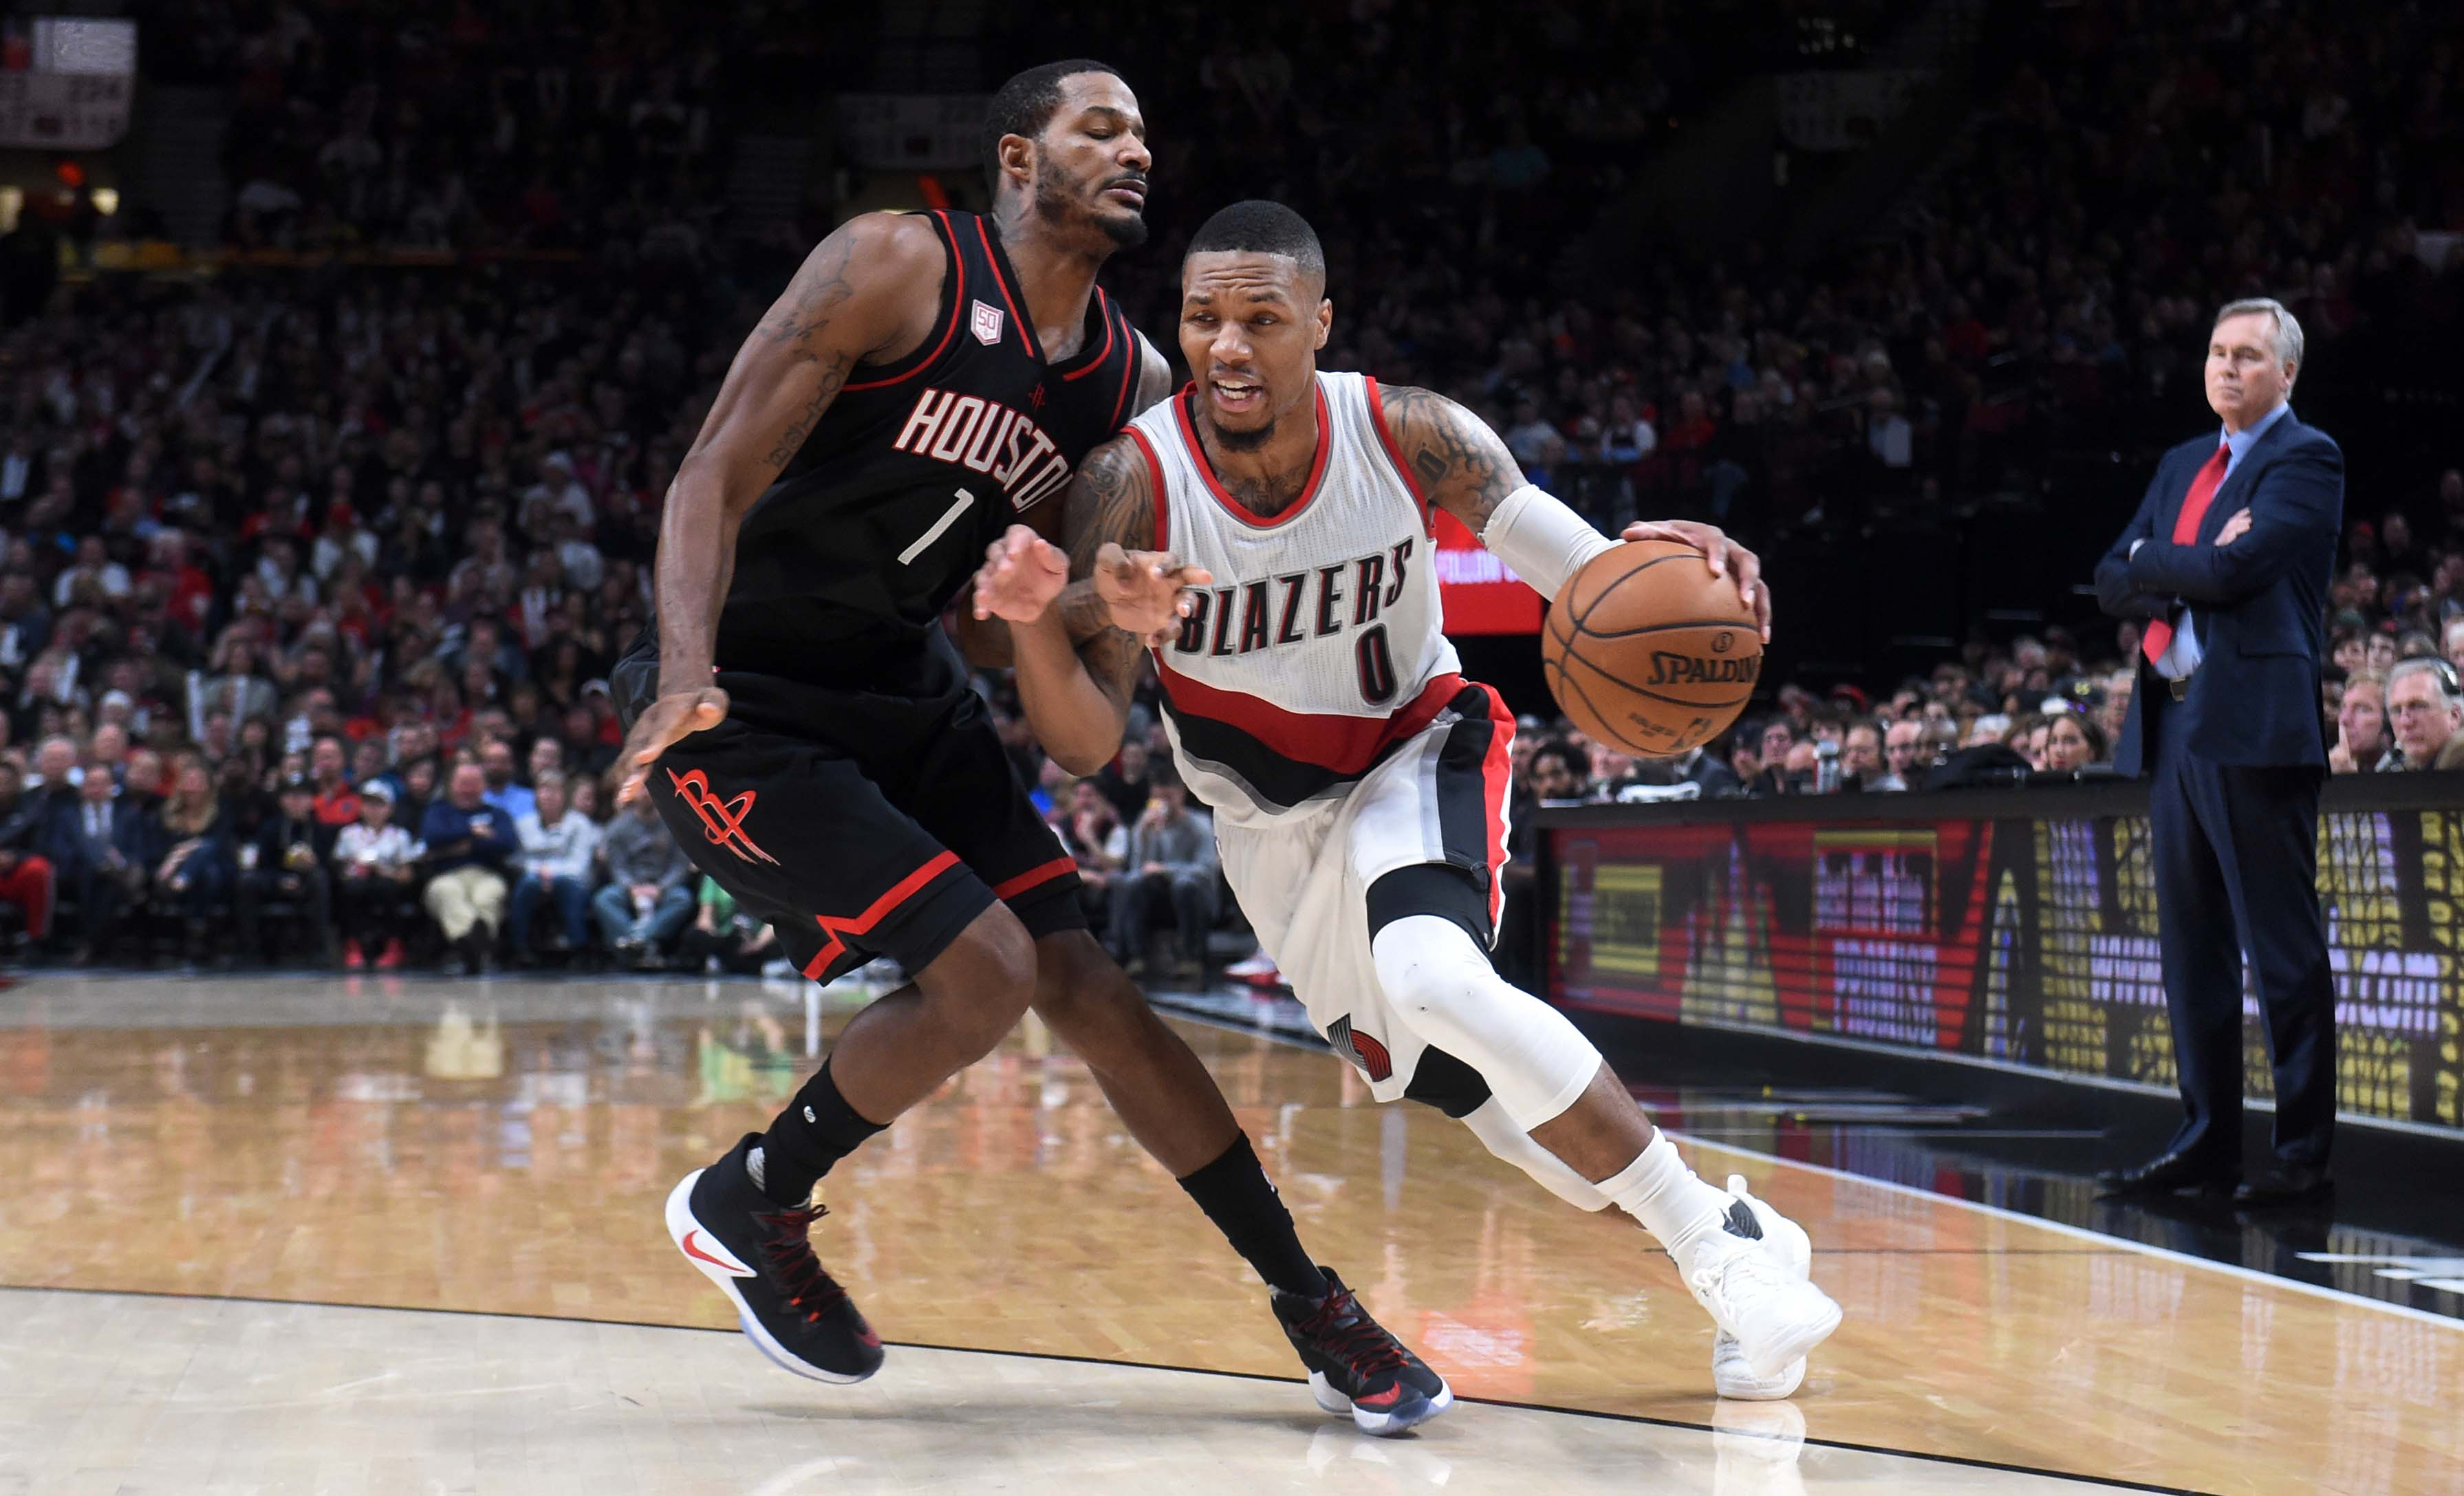 Nov 27, 2016; Portland, OR, USA; Portland Trail Blazers guard Damian Lillard (0) drives to the basket on Houston Rockets forward Trevor Ariza (1) during the fourth quarter of the game at the Moda Center at the Rose Quarter. The Rockets won 130-114. Mandatory Credit: Steve Dykes-USA TODAY Sports